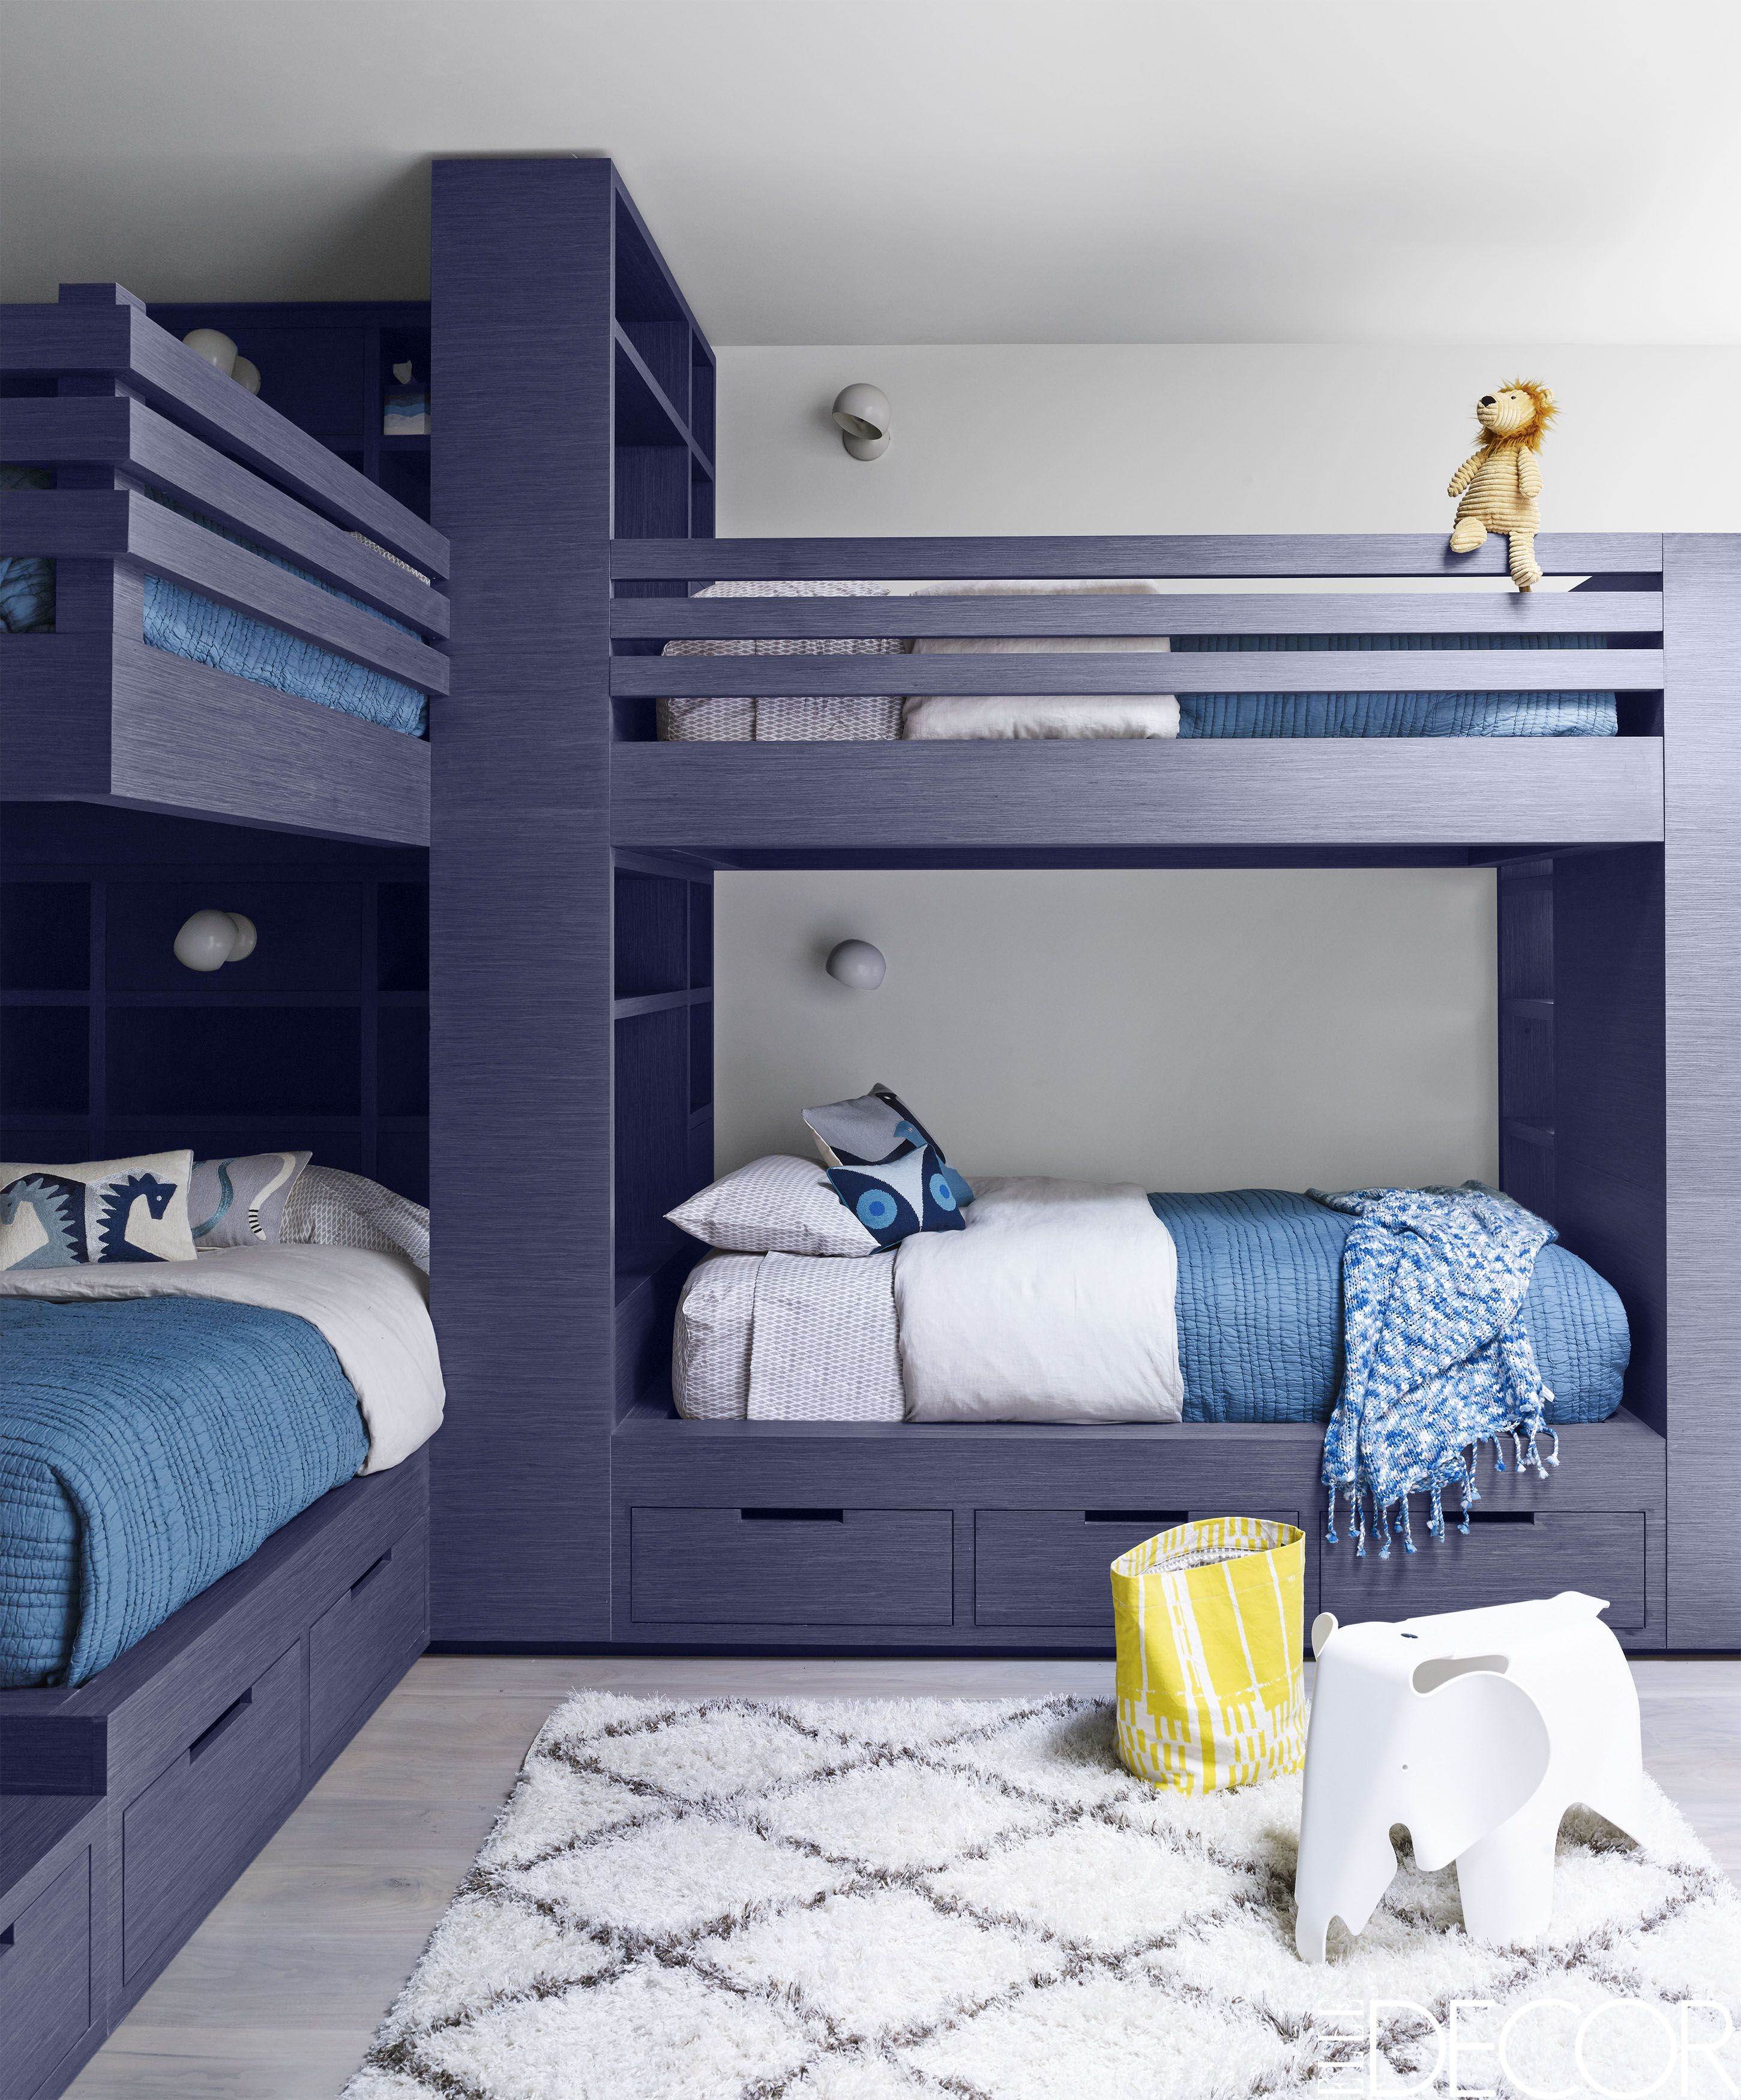 Pictures Of Childrens Bedroom Ideas 20 amazing boys room ideas - how to decorate a boys bedroom